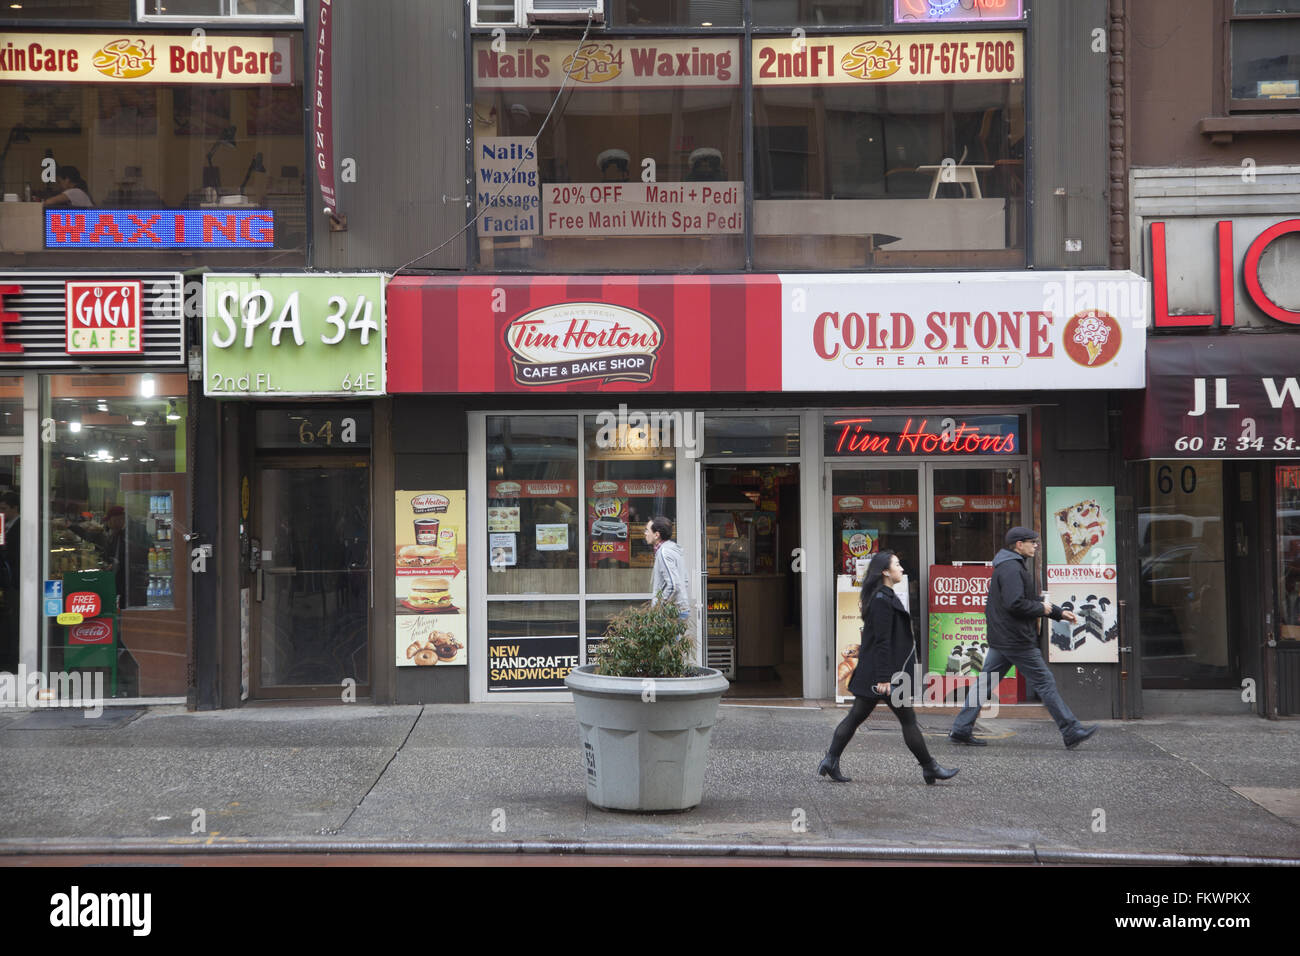 Independent small businesses along 34th Street in midtown Manhattan, NYC. - Stock Image